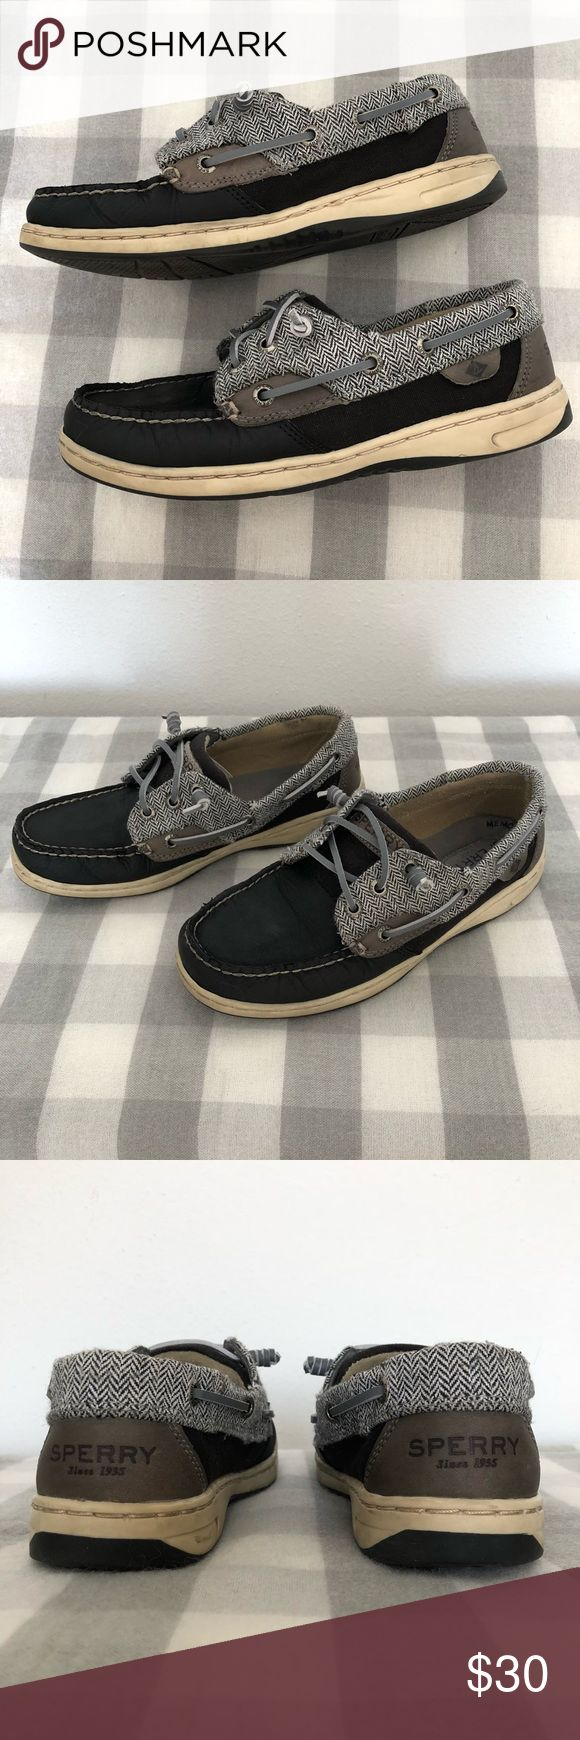 Sperry Top Sider Sperry Top Sider in black and grey leather with b/w herringbone fabric. Light use. These shoes are so comfy with the memory foam!!  Bundle and save!  For sale locally as well. Sperry Shoes Flats & Loafers